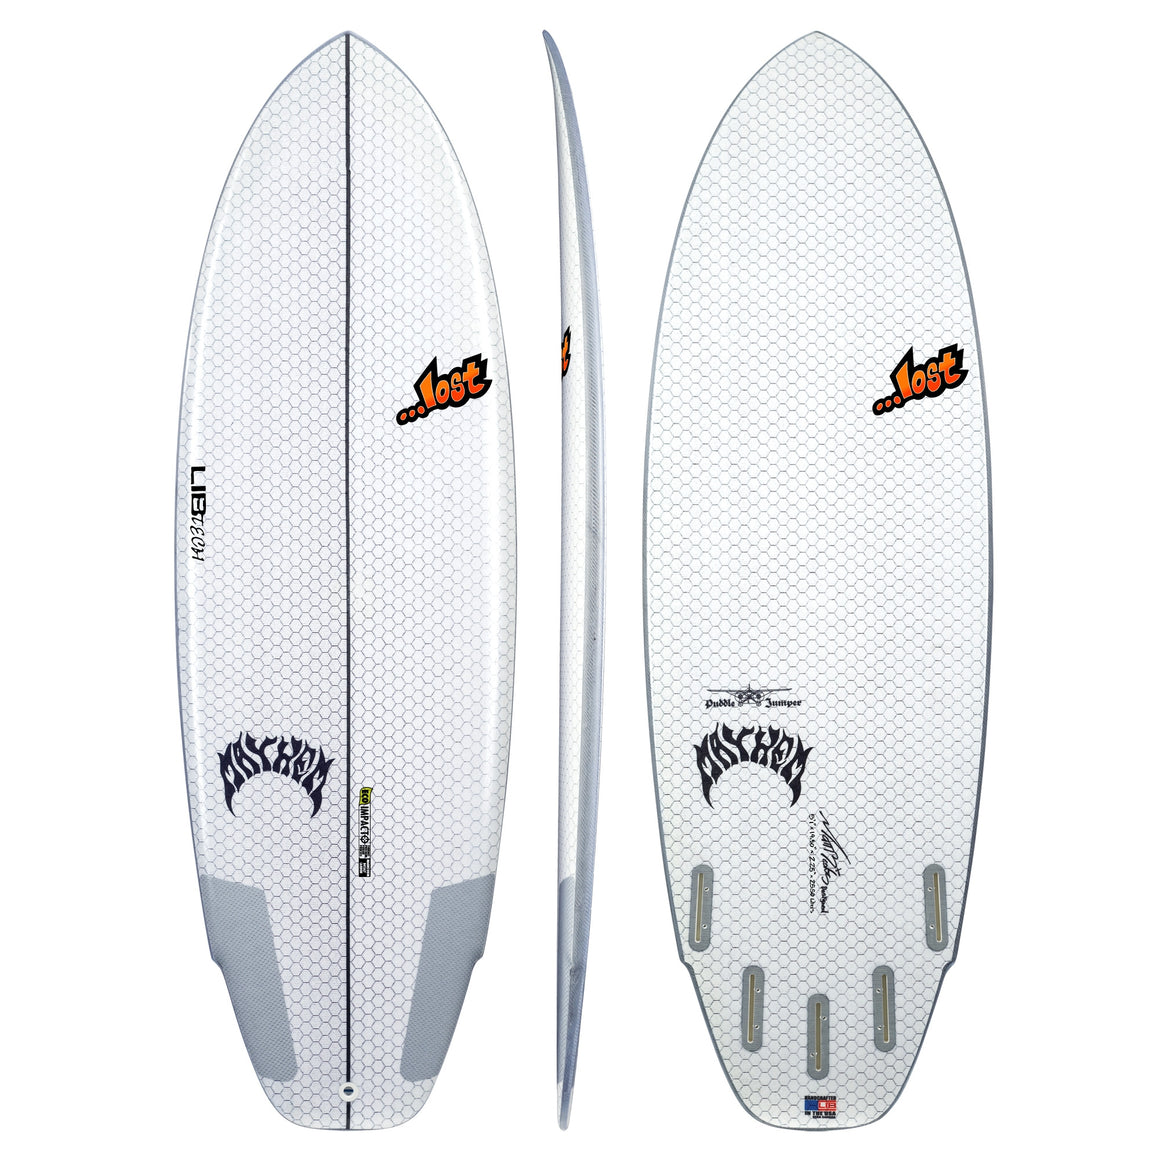 Libtech Puddle Jumper - Lib X Lost 5'7 (FCSII COMPATIBLE)